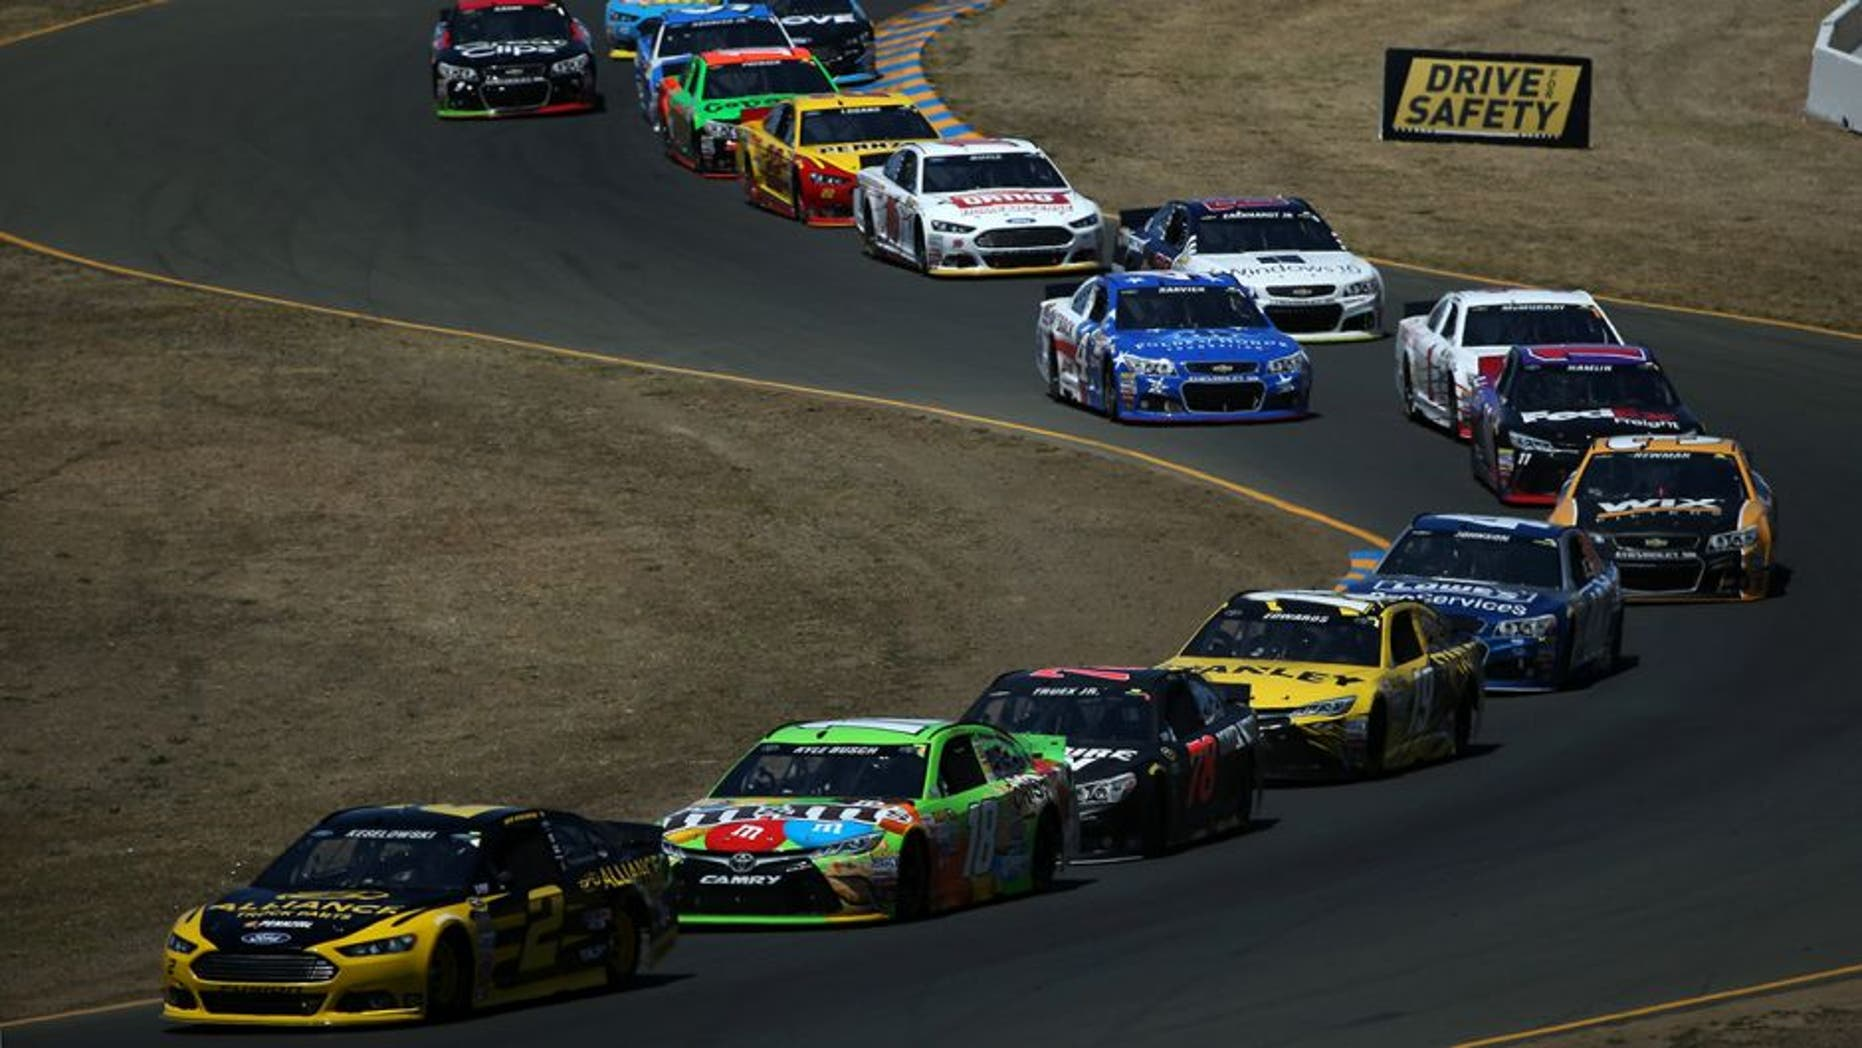 SONOMA, CA - JUNE 28: Brad Keselowski, driver of the #2 Alliance Truck Parts Ford, leads a pack of cars during the NASCAR Sprint Cup Series Toyota/Save Mart 350 at Sonoma Raceway on June 28, 2015 in Sonoma, California. (Photo by Patrick Smith/Getty Images)